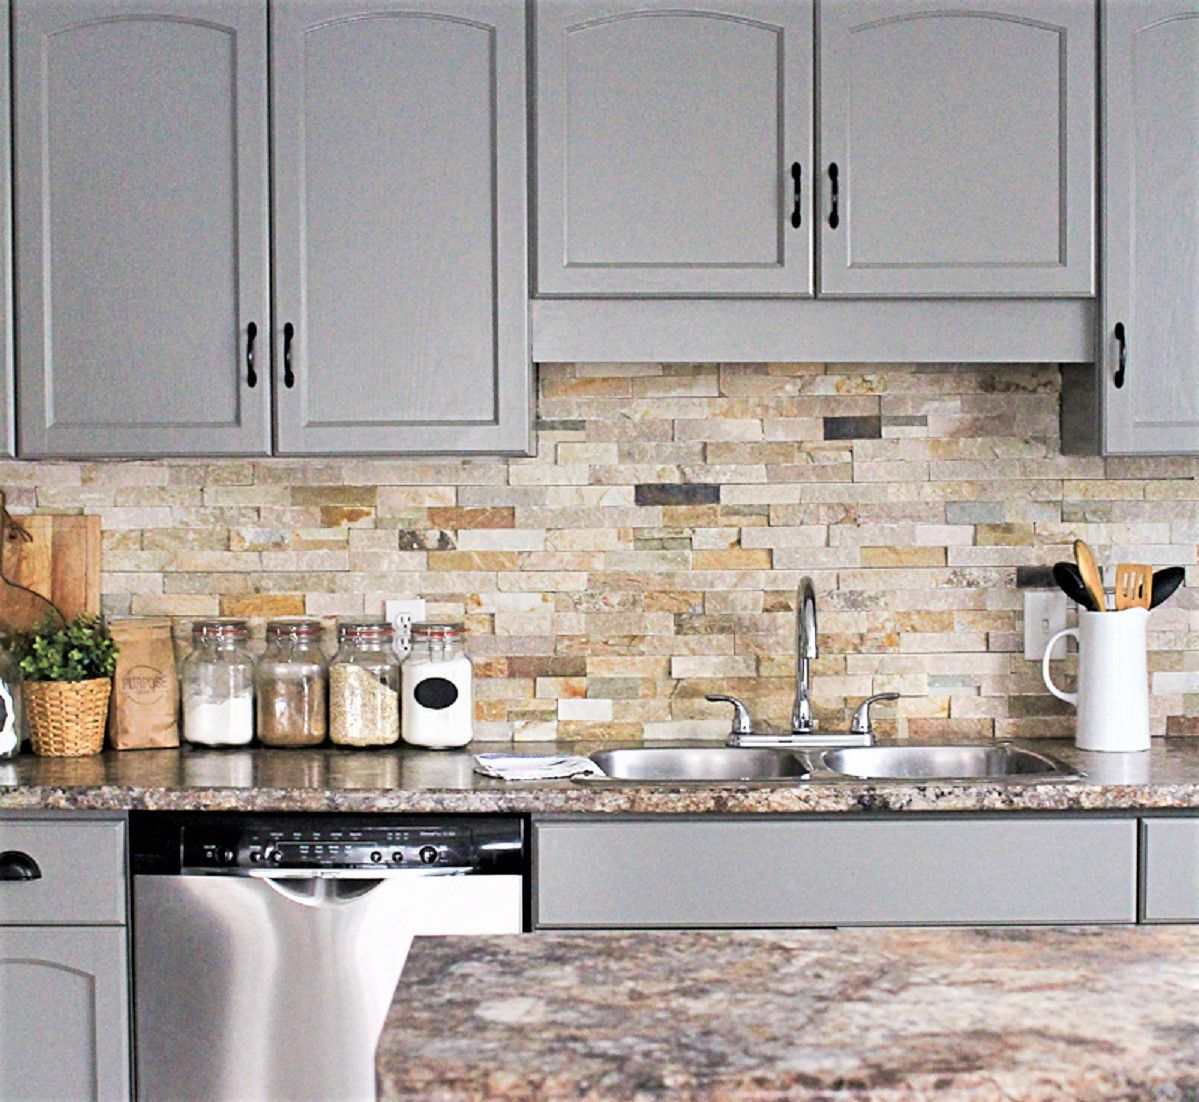 My New Favorite Way To Paint Kitchen Cabinets: Painted Kitchen Cabinet Ideas